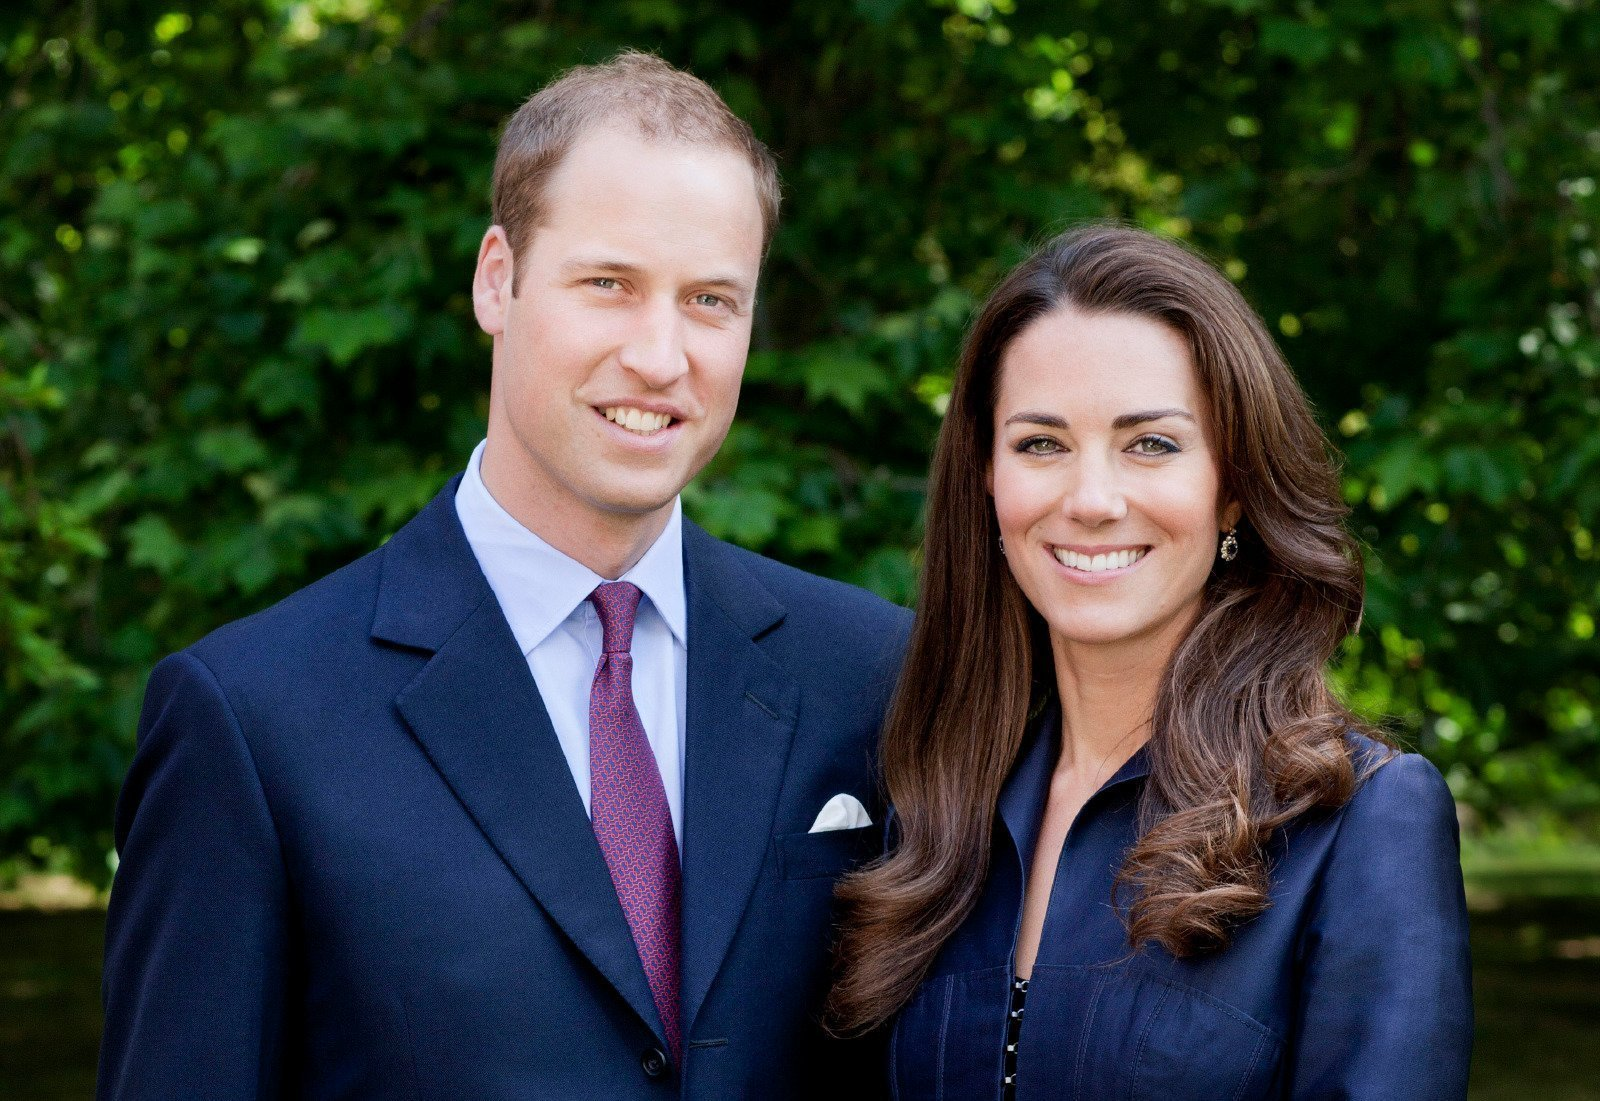 Prince William and Kate Middleton pose for a portrait in the Garden's of Clarence House on June 3, 2011. | Photo : Getty Images